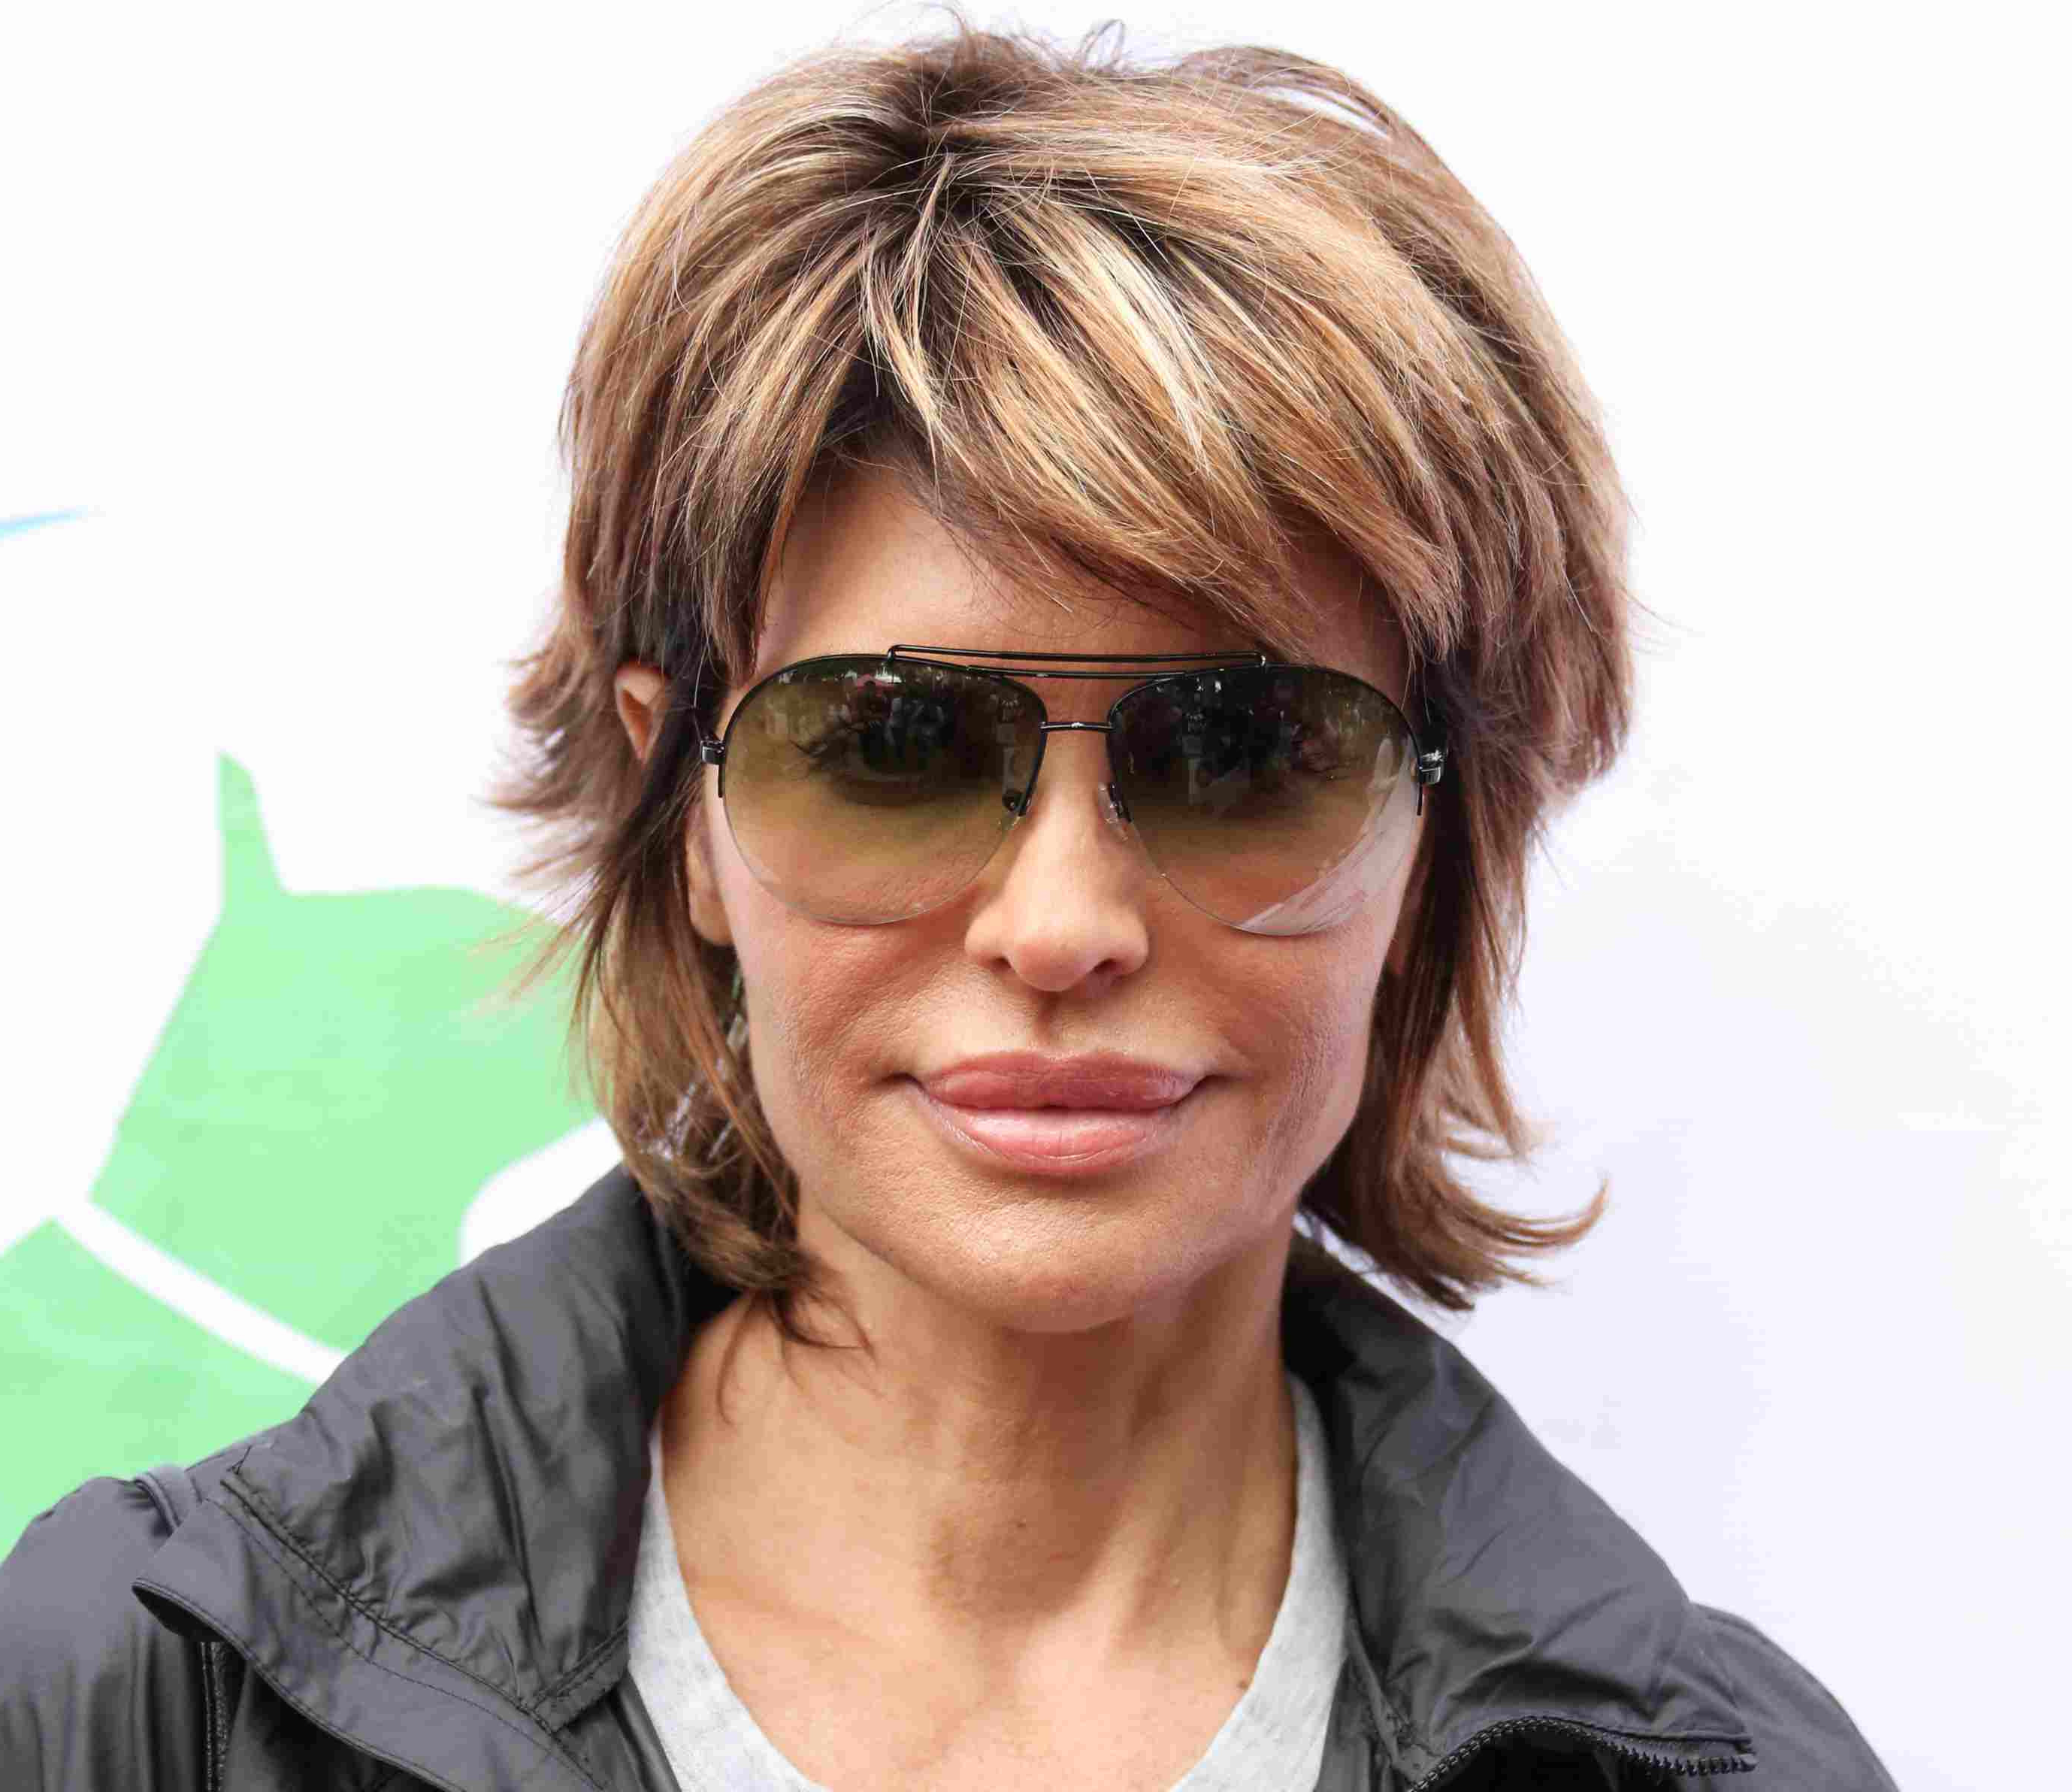 Short Hairstyles For Thin Hair And Glasses Best Of 34 Gorgeous Short Pertaining To Short Haircuts For Women With Glasses (View 19 of 25)